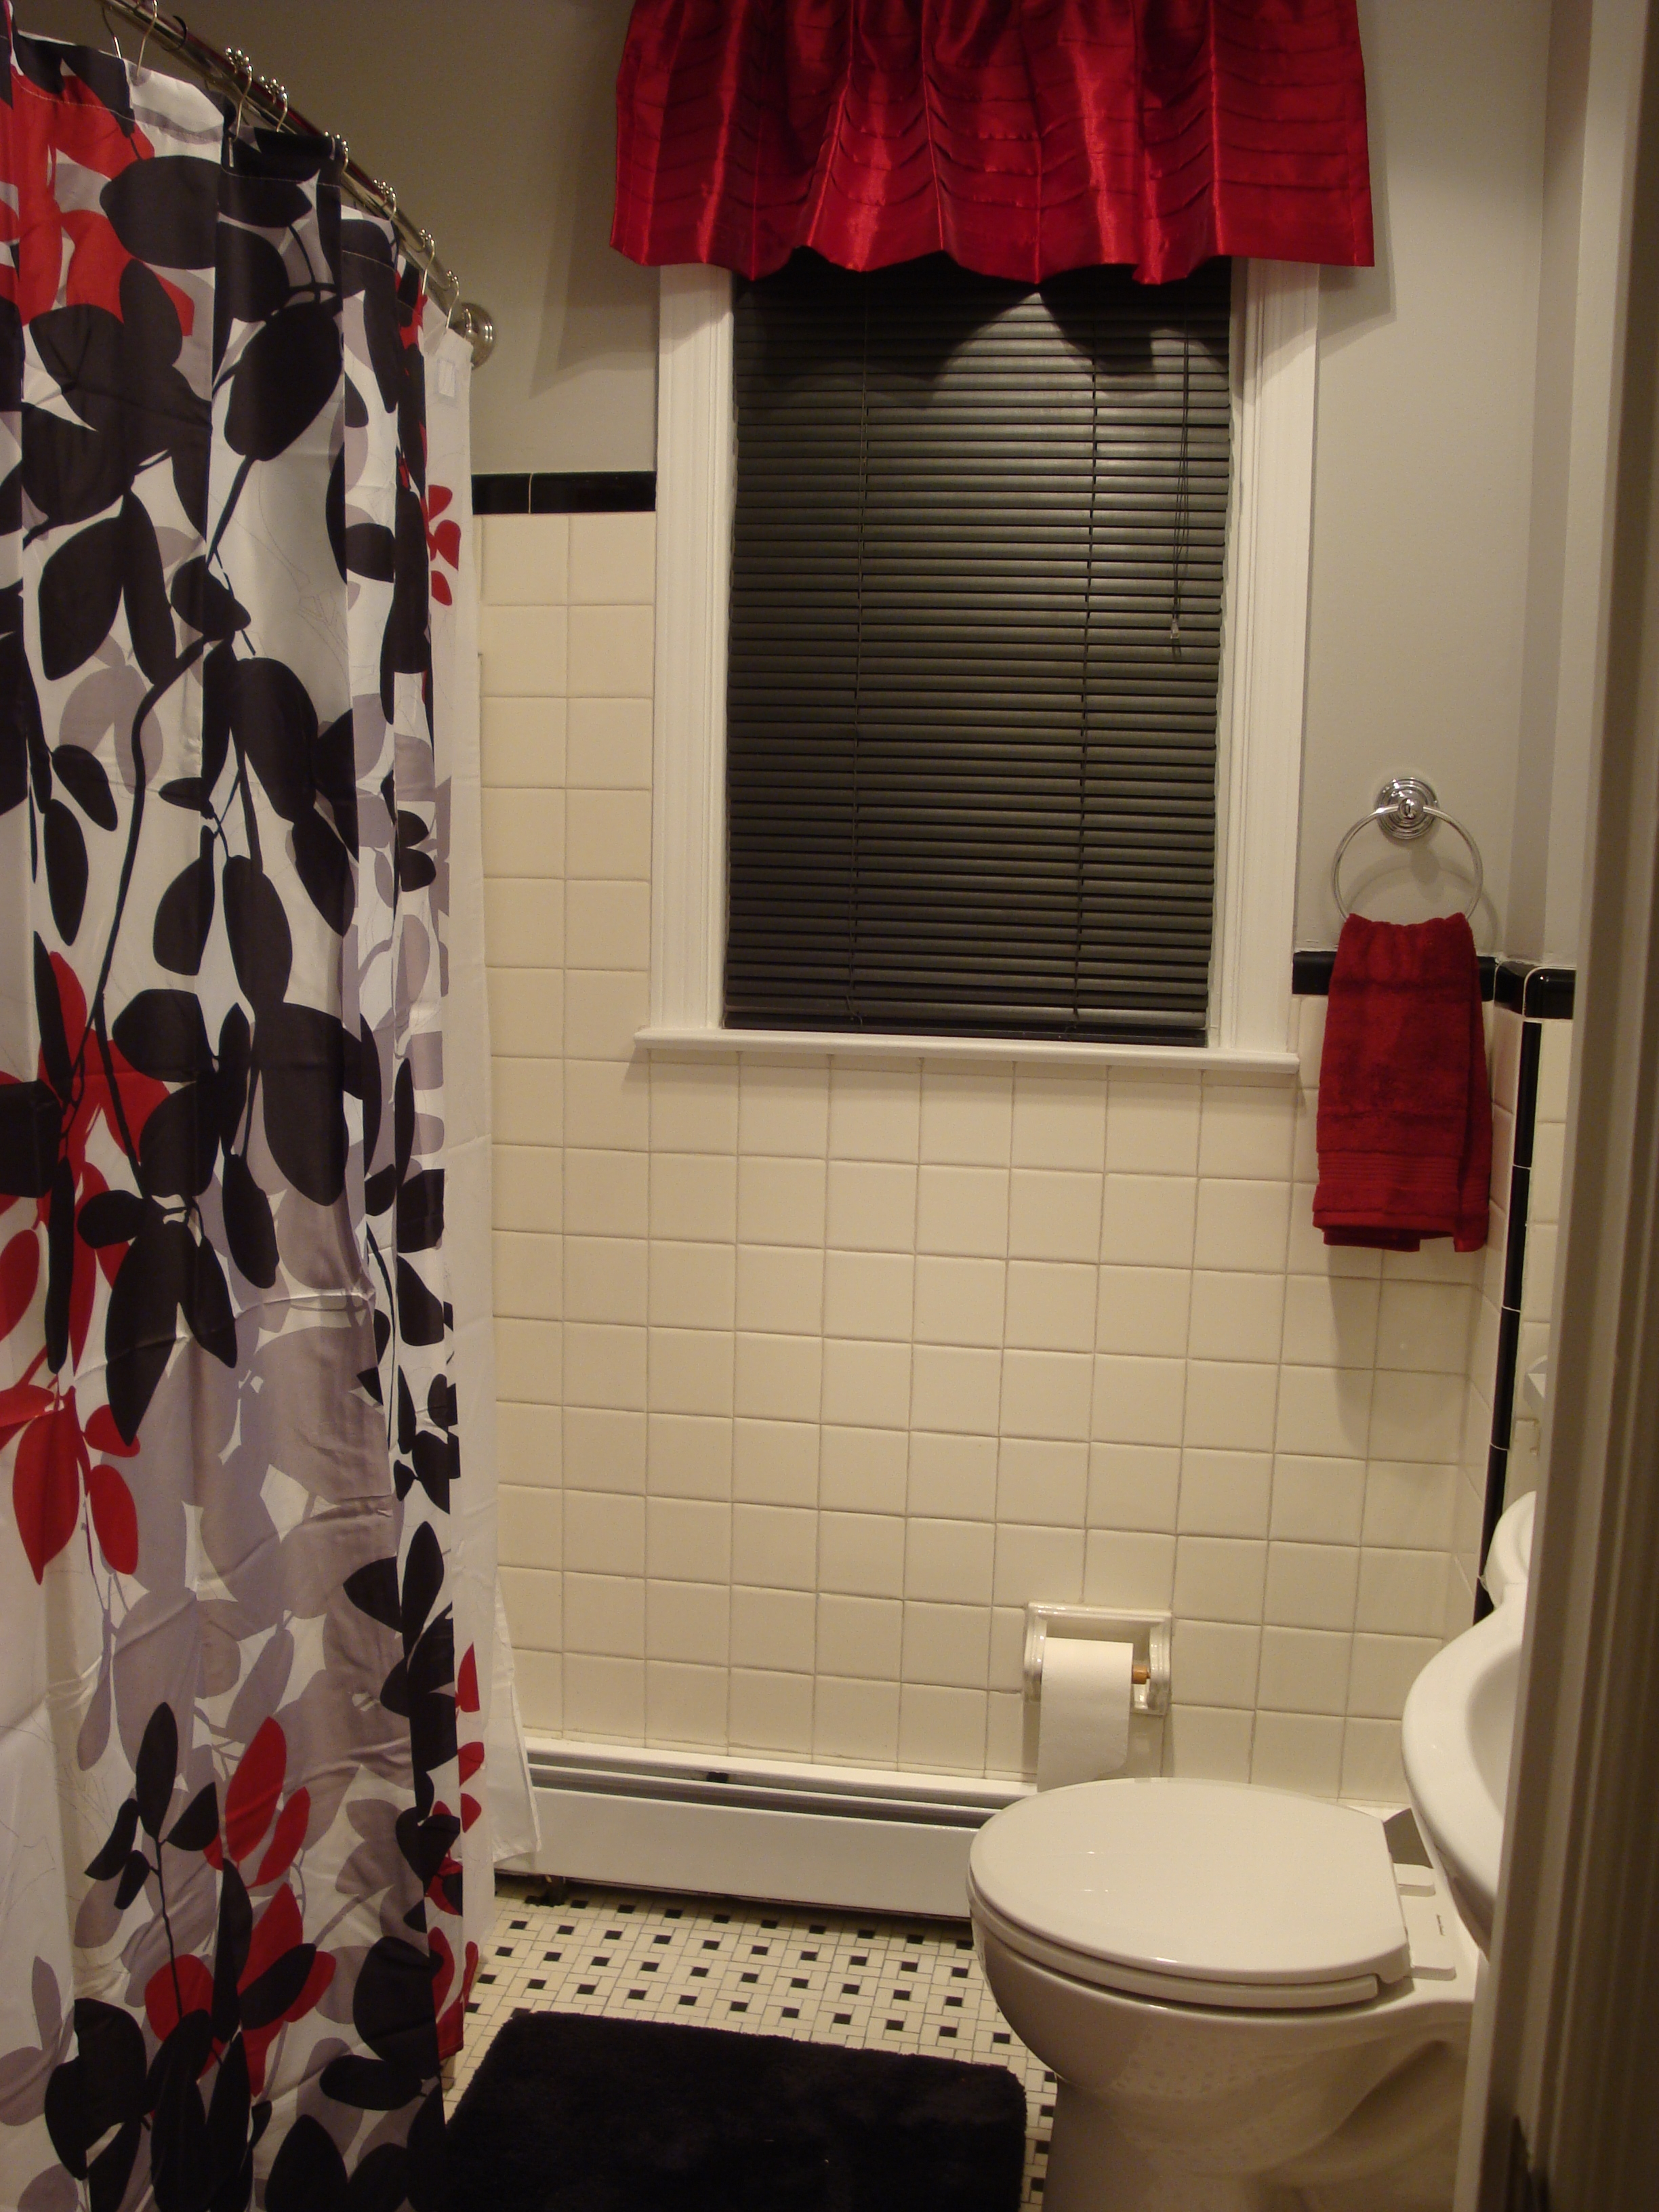 Stunning Ideas Black And Red Shower Curtain Spectacular Design intended for dimensions 2448 X 3264